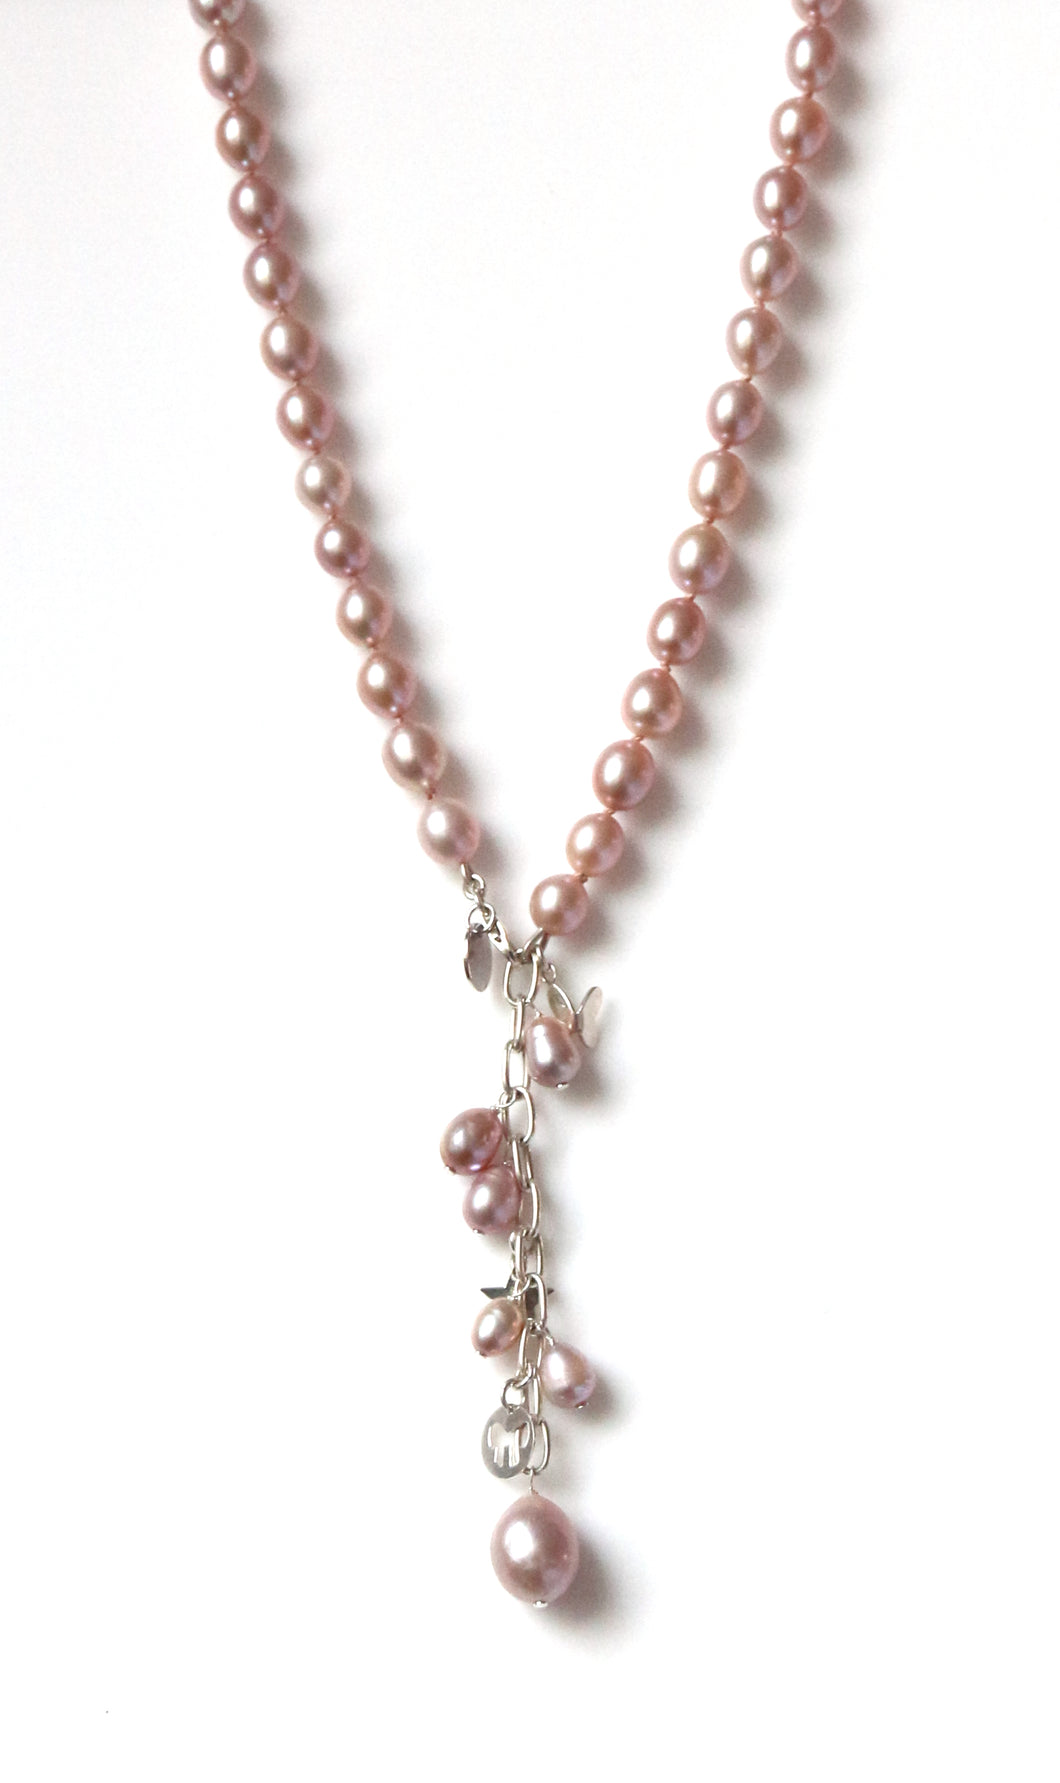 Australian Handmade Pink Natural Colour Pearl Necklace with Sterling Silver Charms and Chain